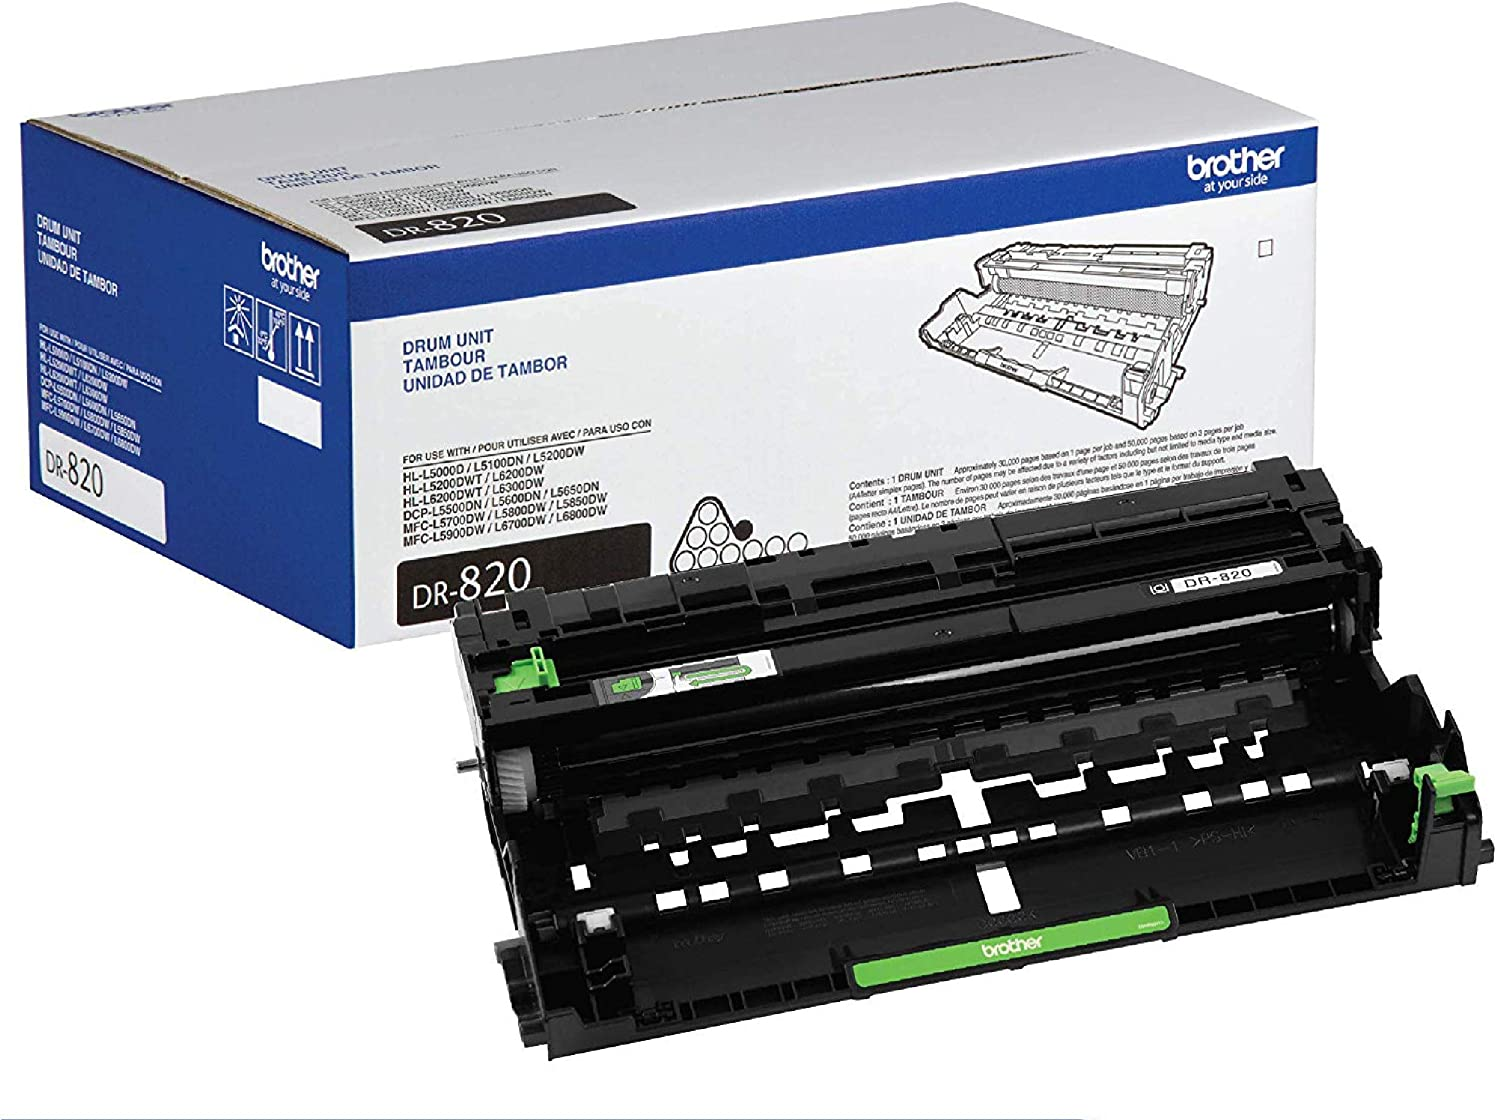 Brother Genuine Drum Unit, DR820, Seamless Integration, Yields Up to 30,000 Pages, Black: Office Products